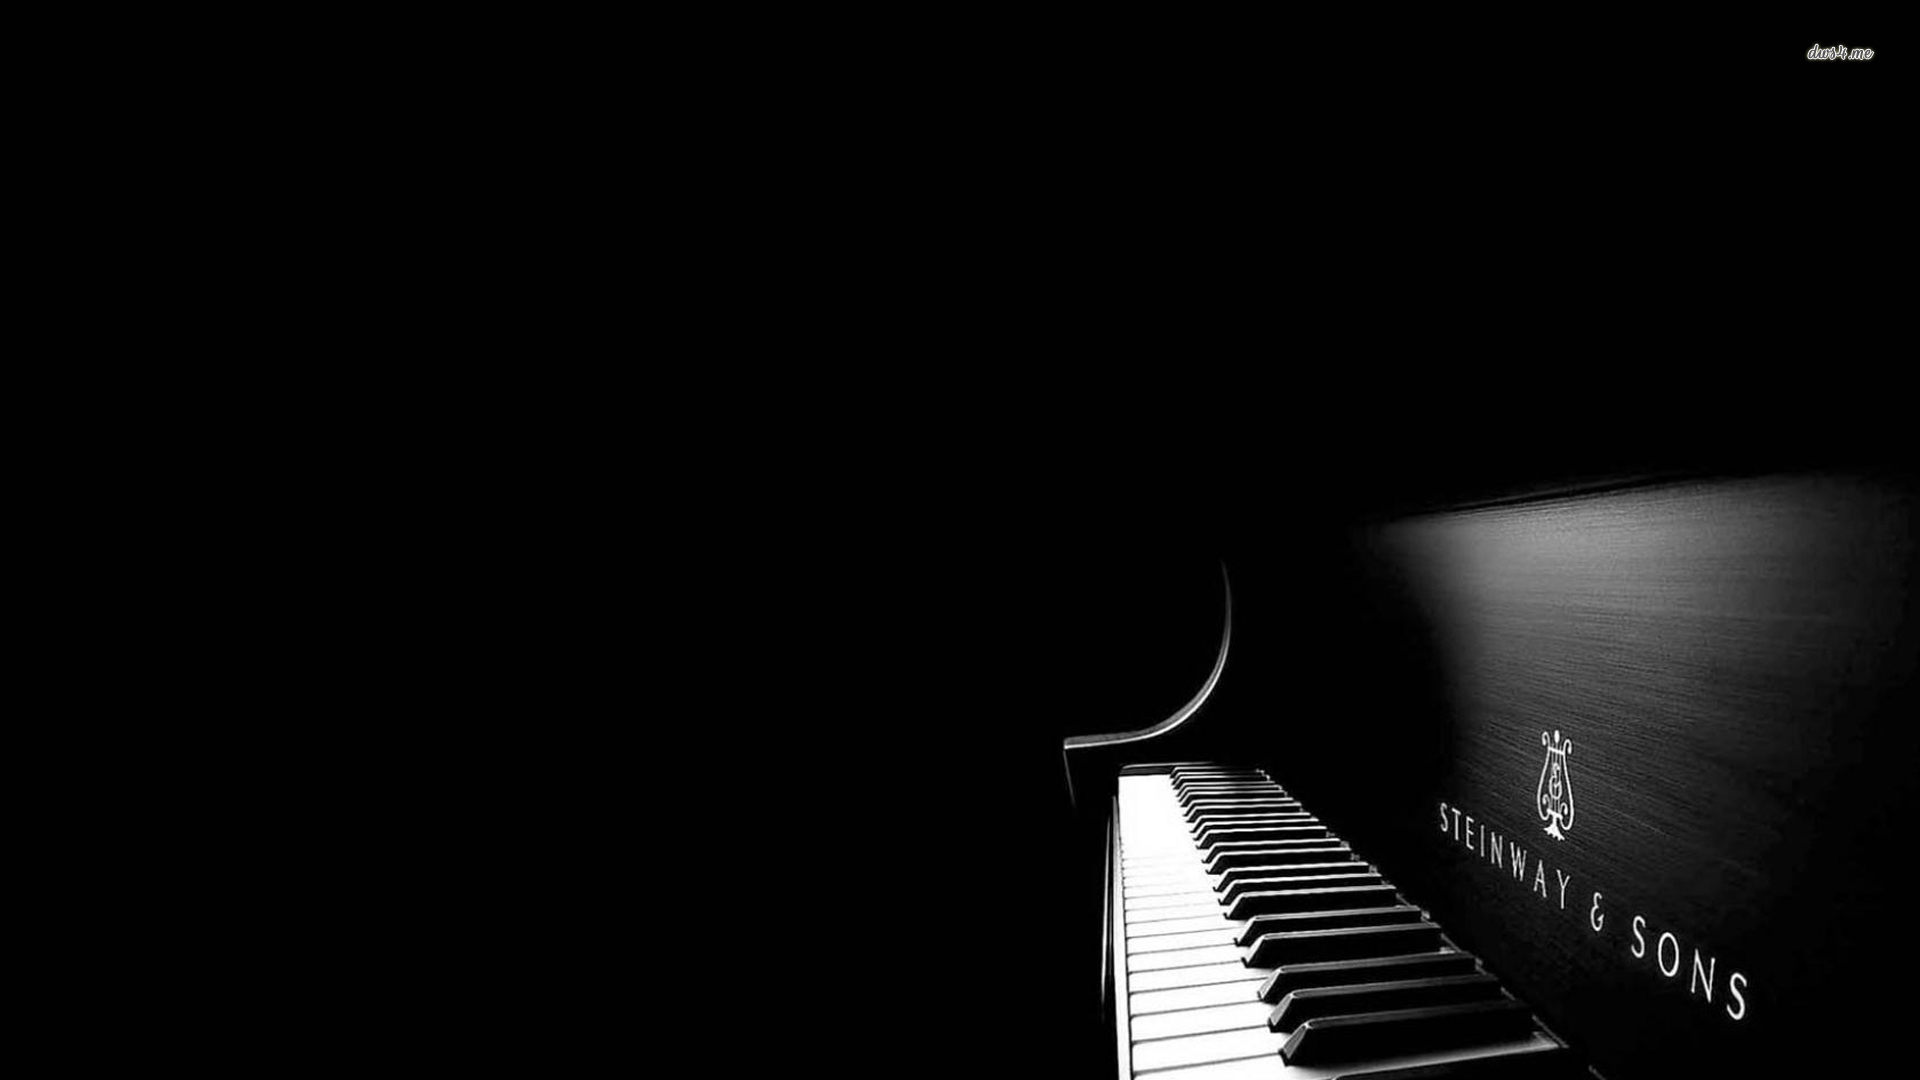 Steinway Sons piano wallpaper   Music wallpapers   19708 1920x1080